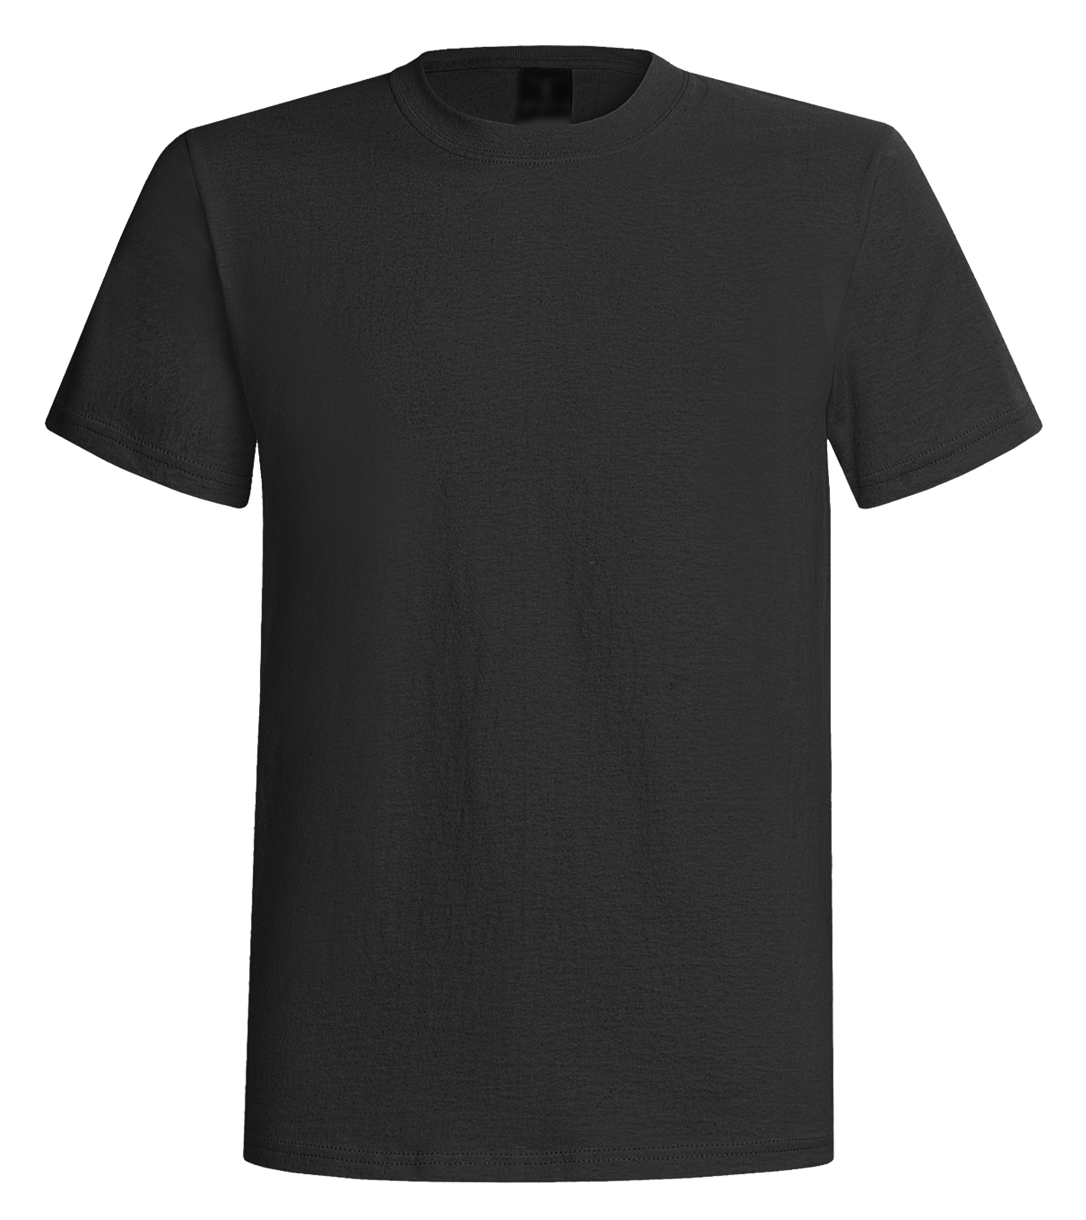 Shop top-brand wholesale t-shirts, blank hoodies, and polos at ShirtMax, the leader in bulk printable apparel. Find sweatshirts, jackets, and more at low prices!